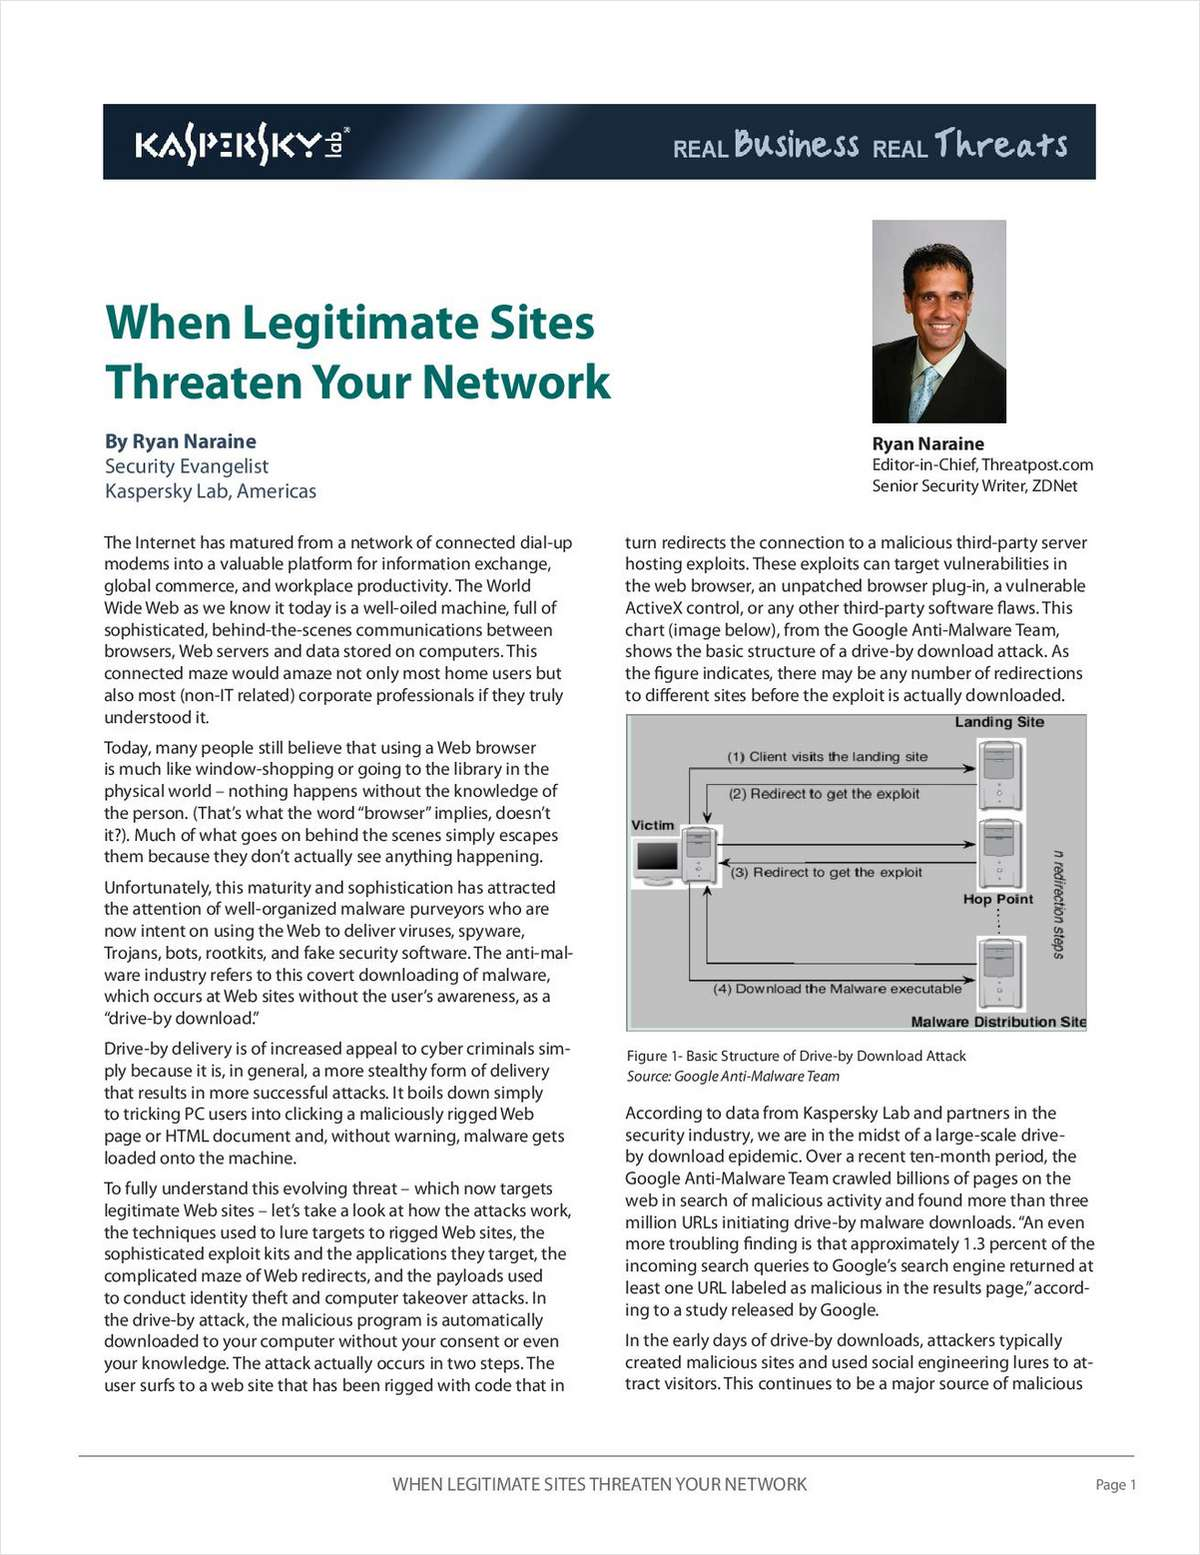 When Legitimate Sites Threaten Your Network